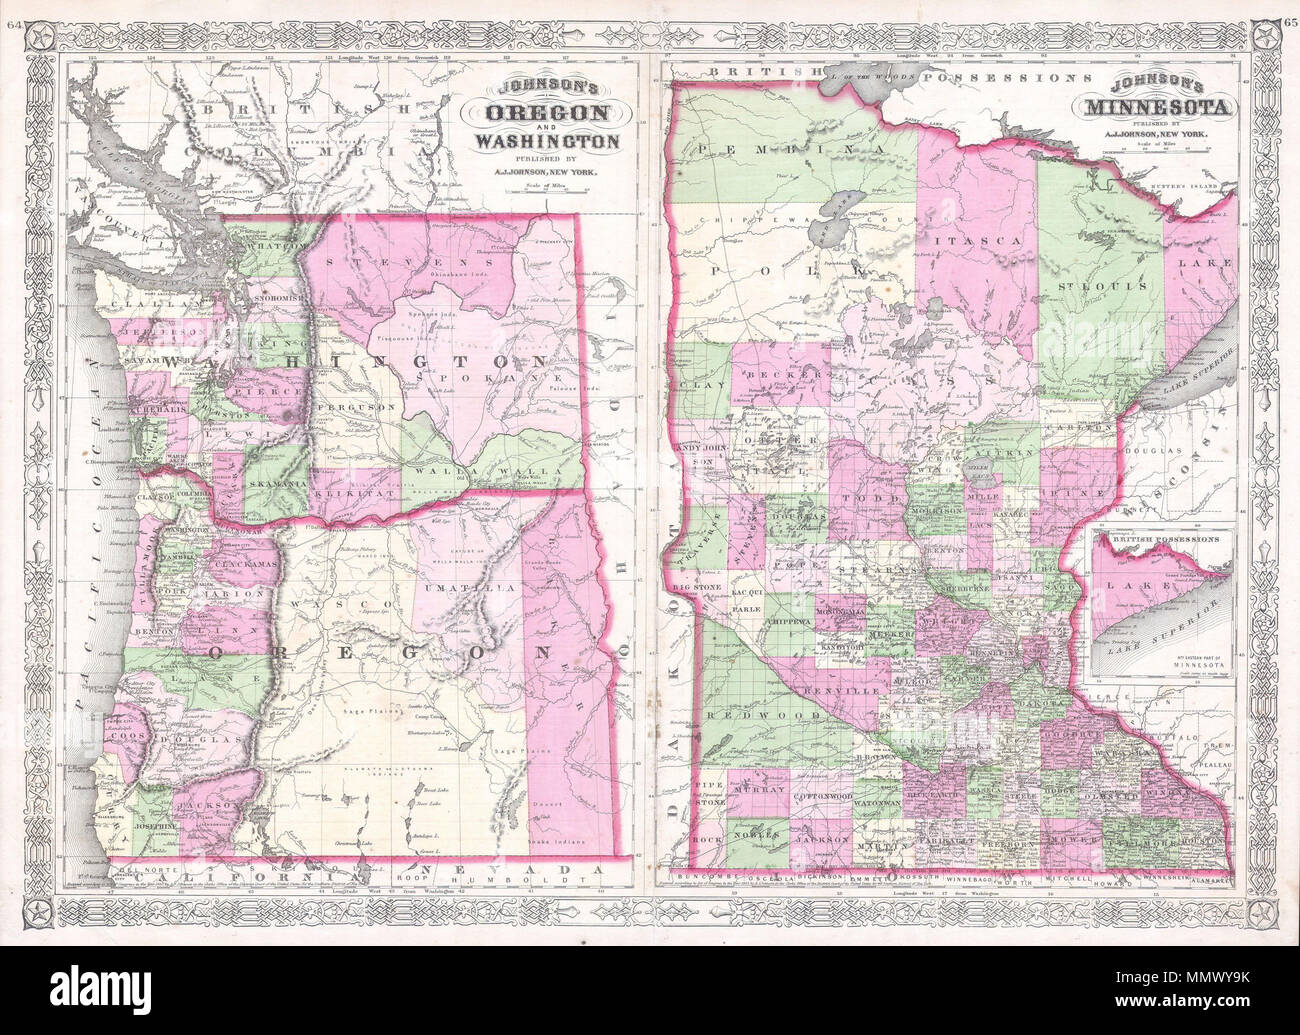 Map Of New York District Courts.English This Is A Magnificent 1865 Hand Colored Map Of Washington